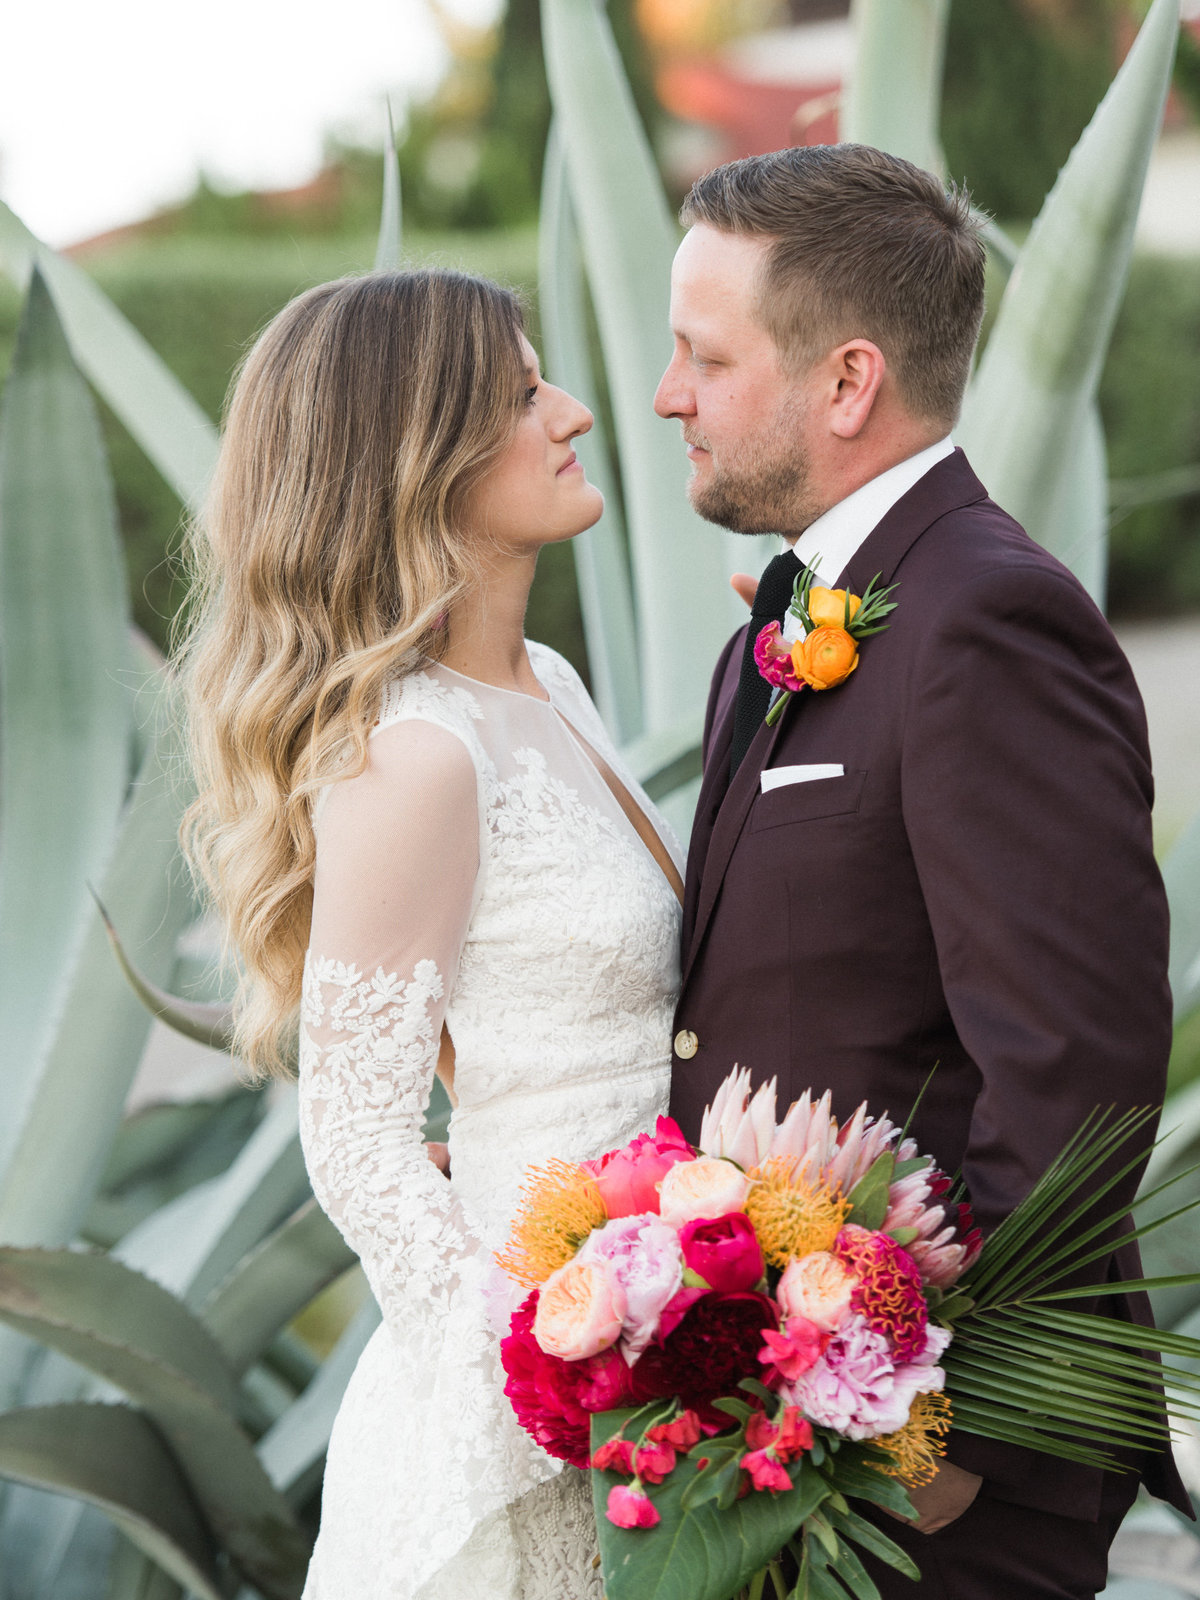 Courtney Hanson Photography - Vintage Tropical Wedding at The Belmont Hotel in Dallas-0667